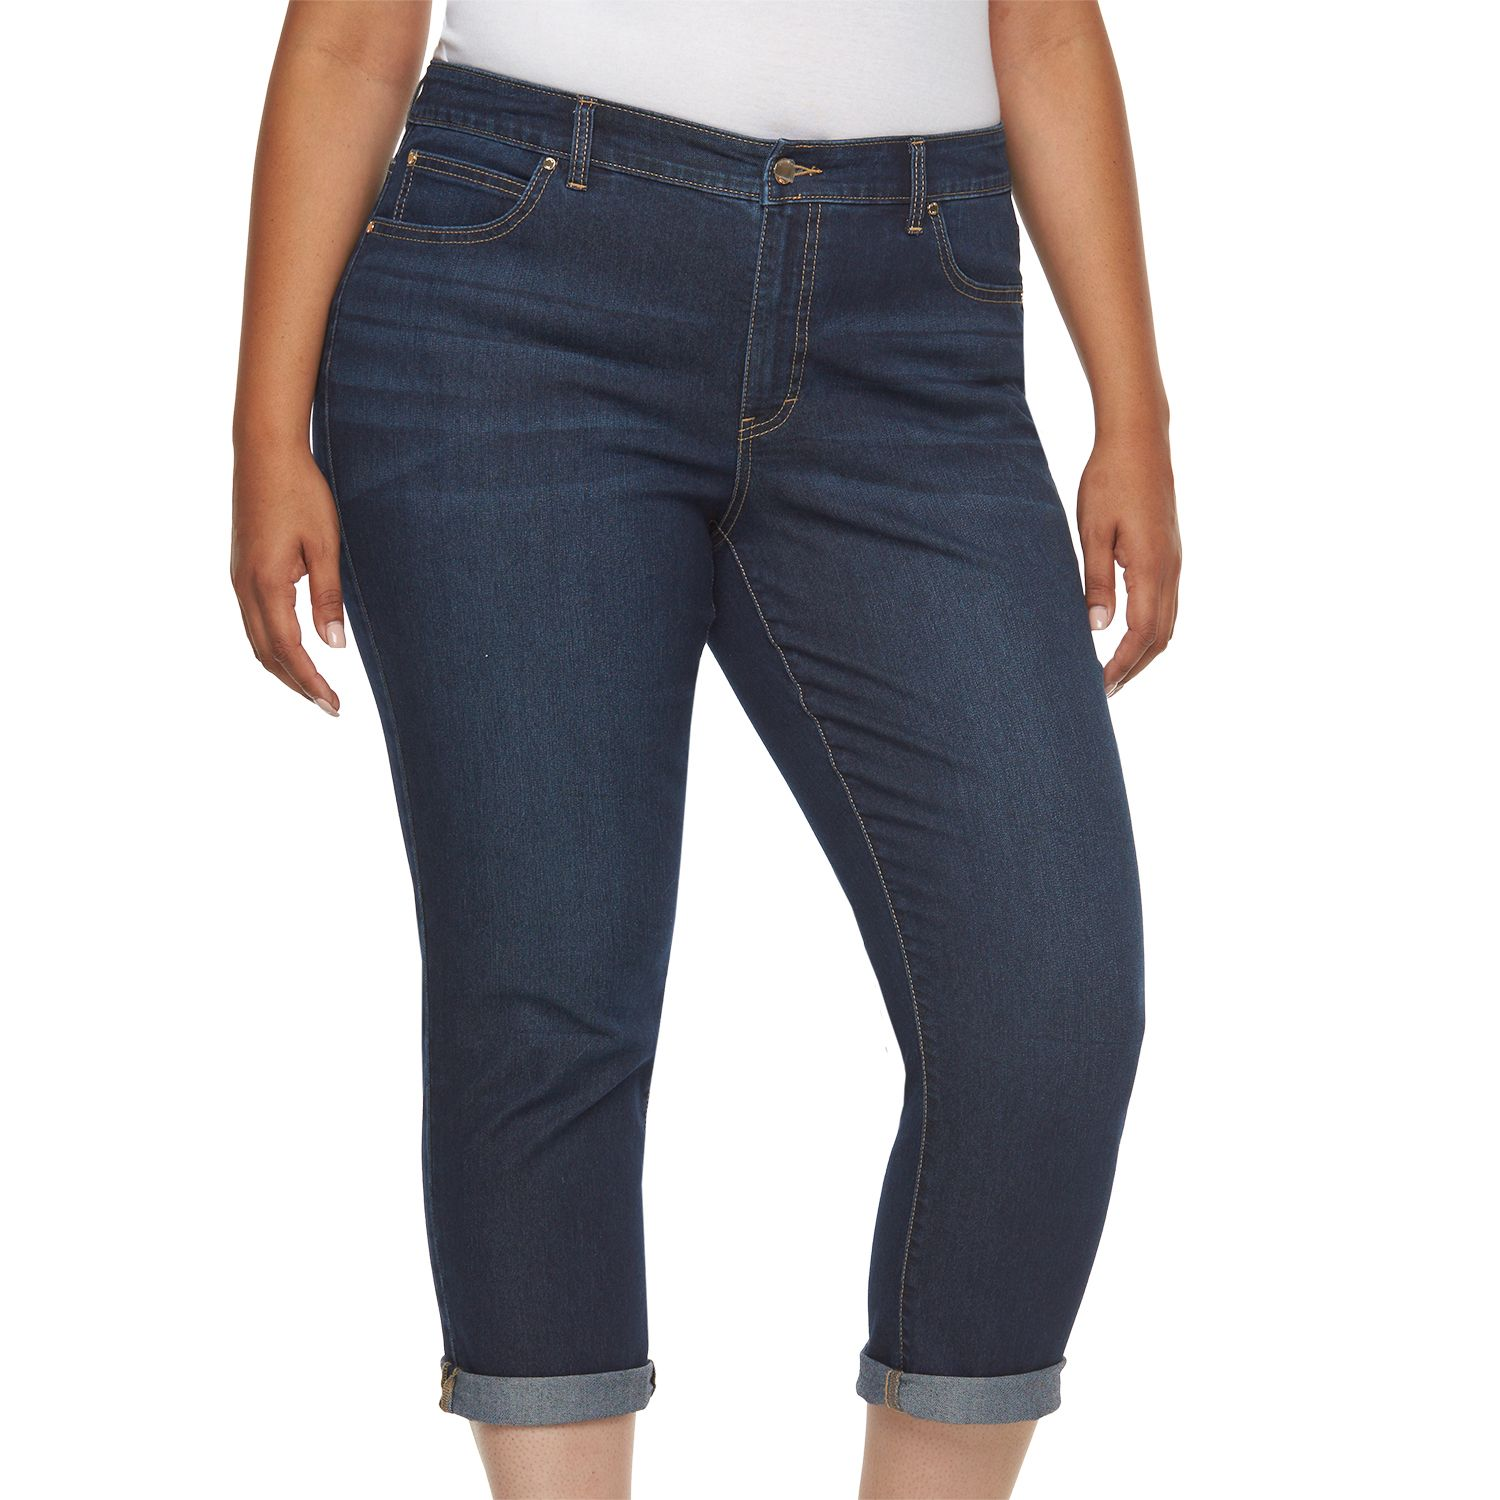 Ladies cropped jeans size 18